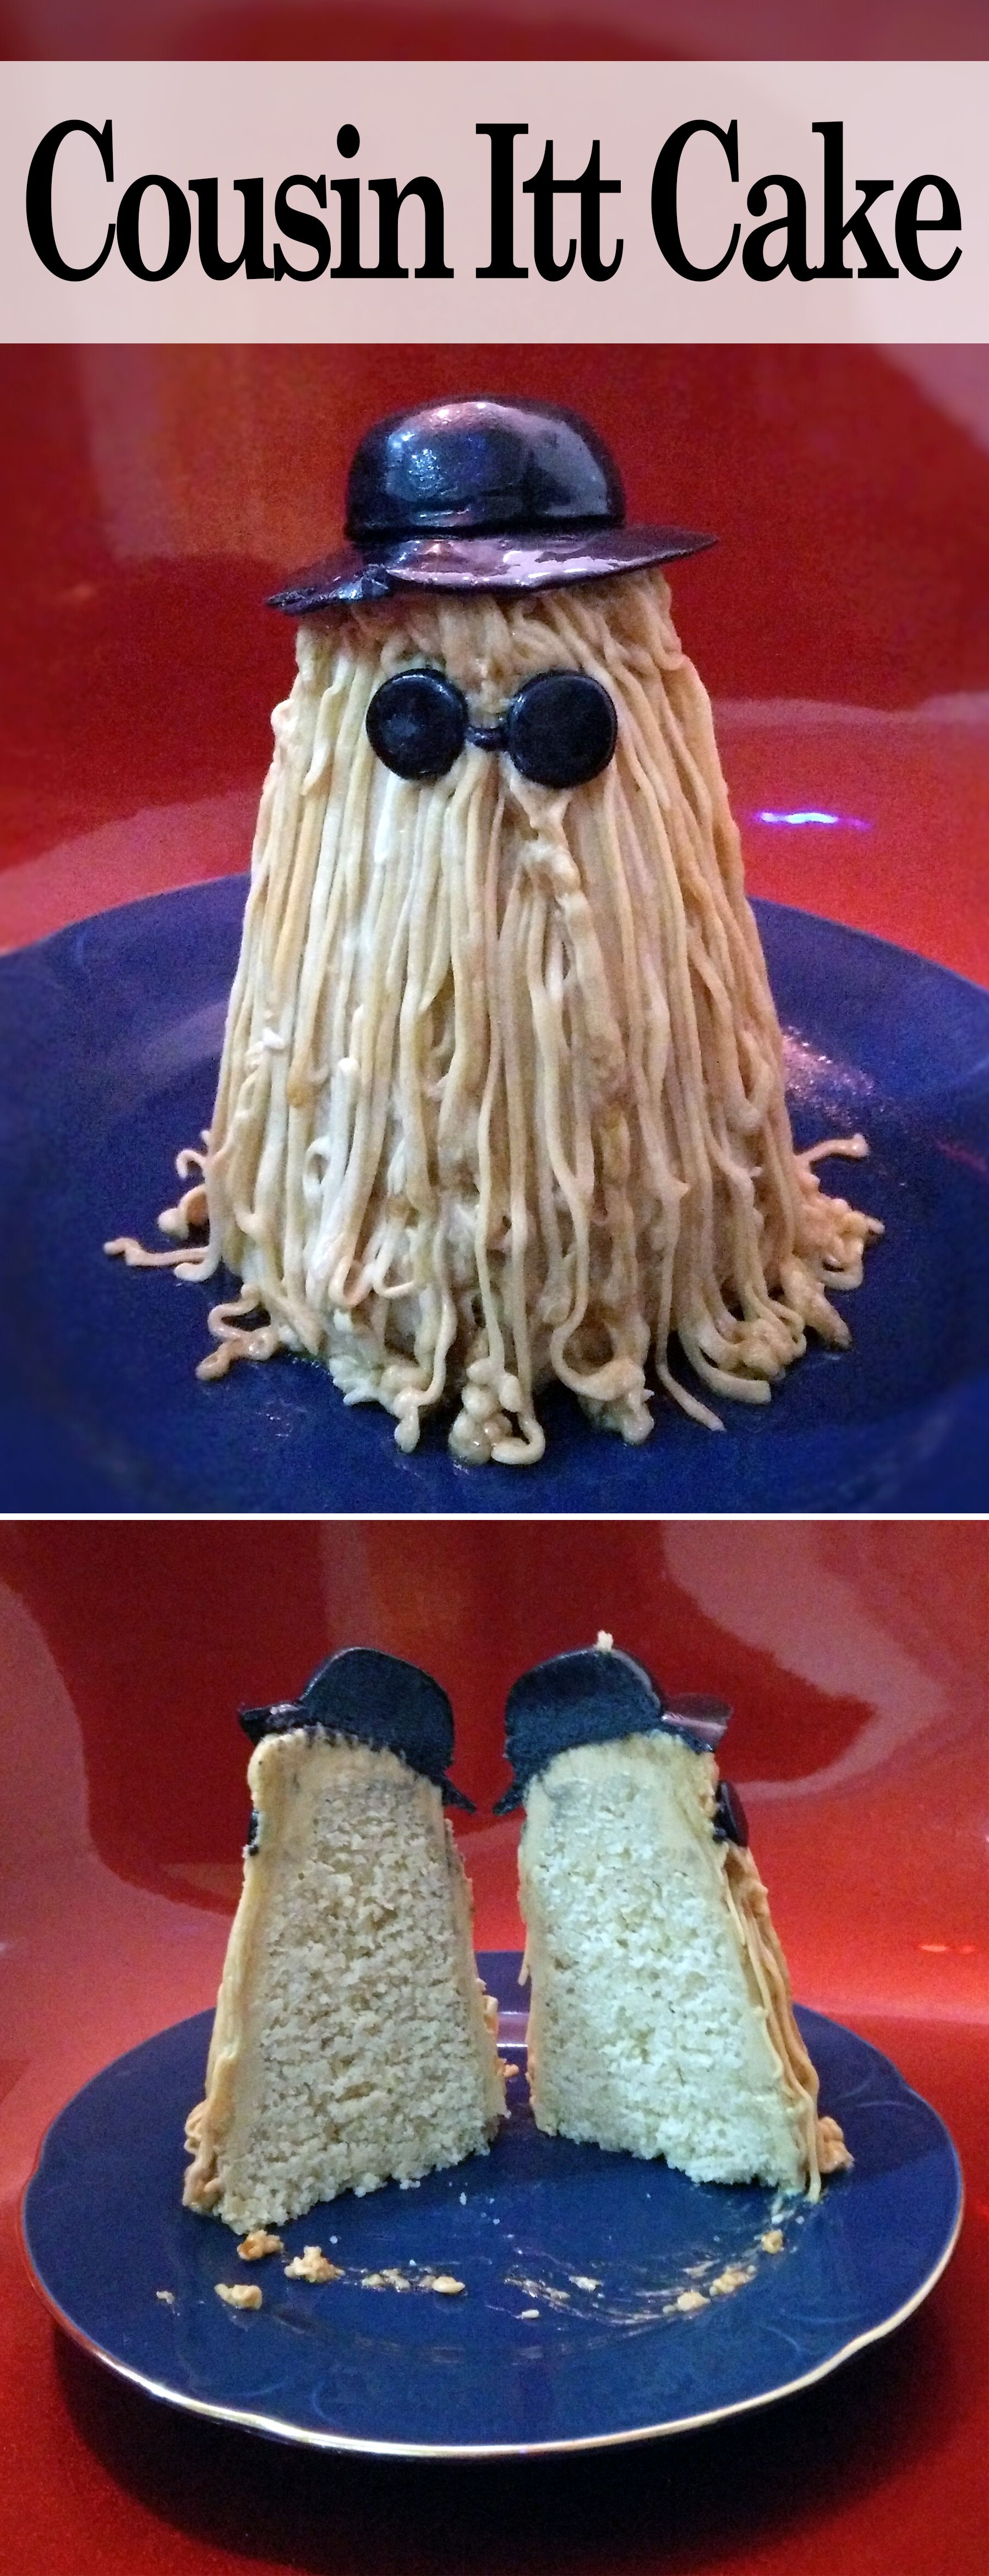 Coussins Decoration Cousin Itt Cake Butter Cakes Butter And Coffee